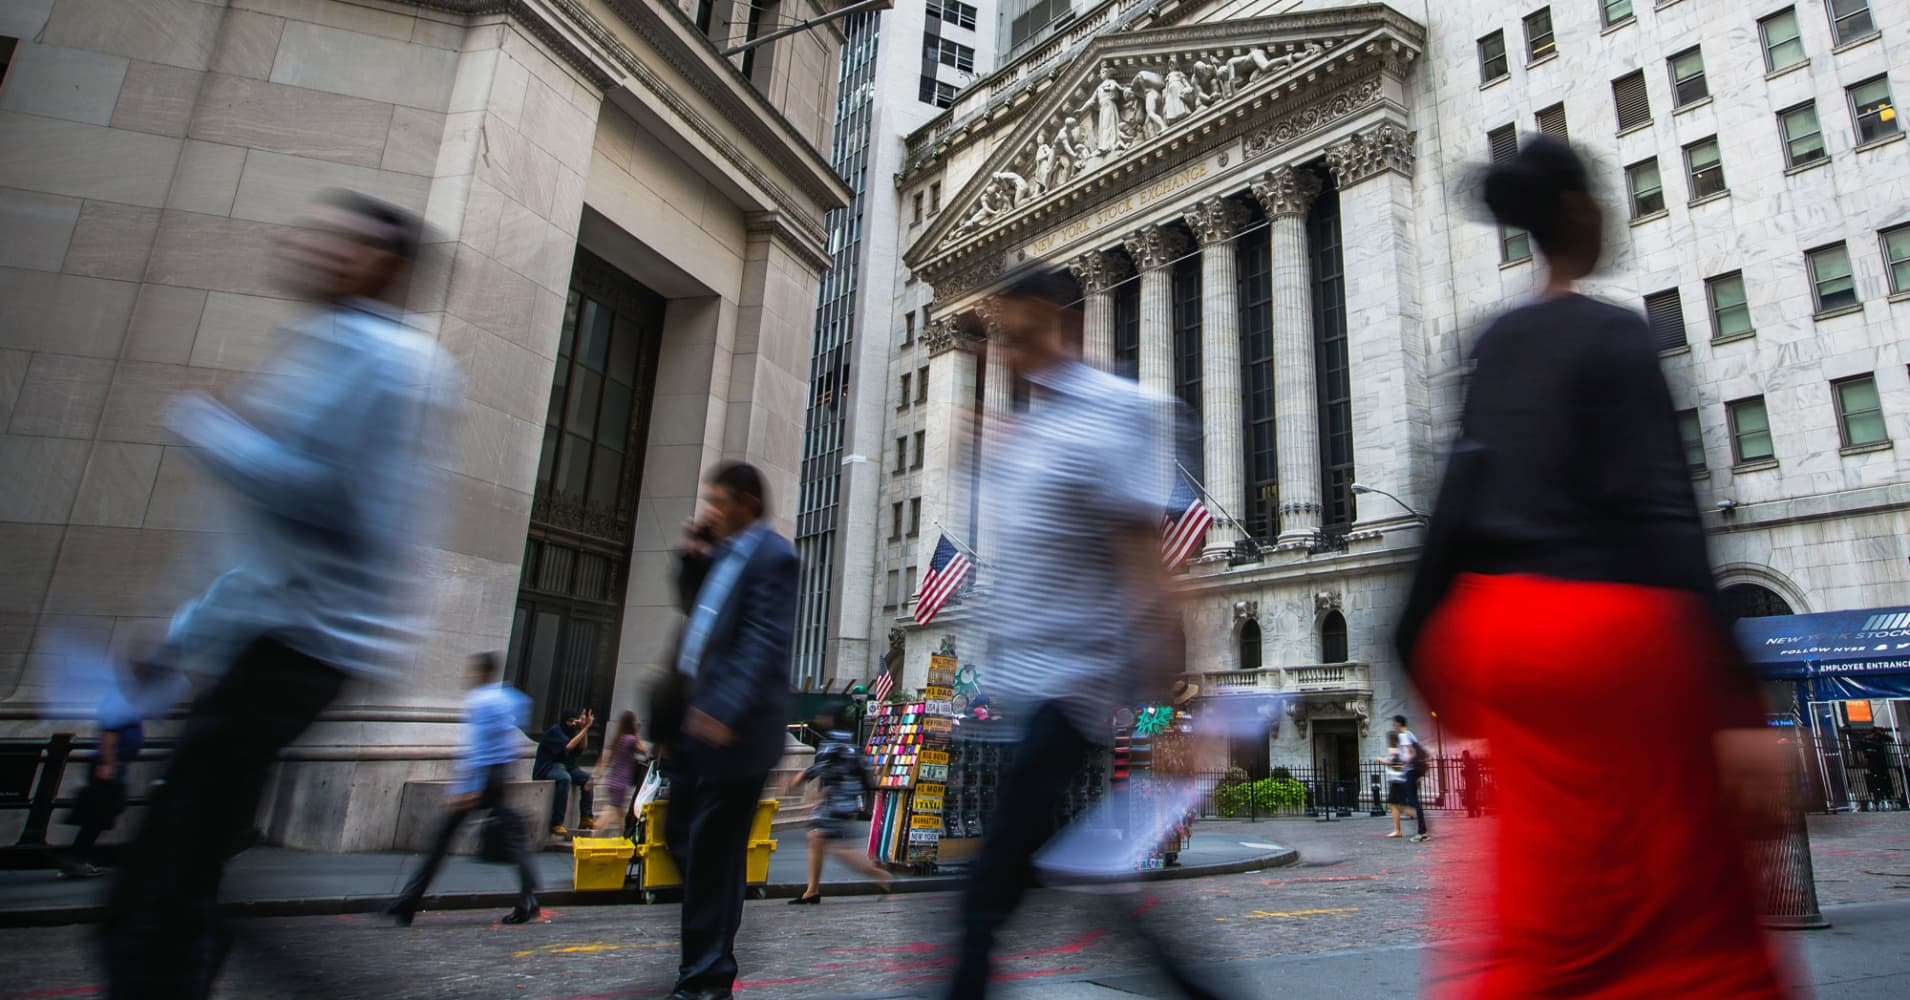 A growing market divergence could spell trouble for stocks, Piper Jaffray says